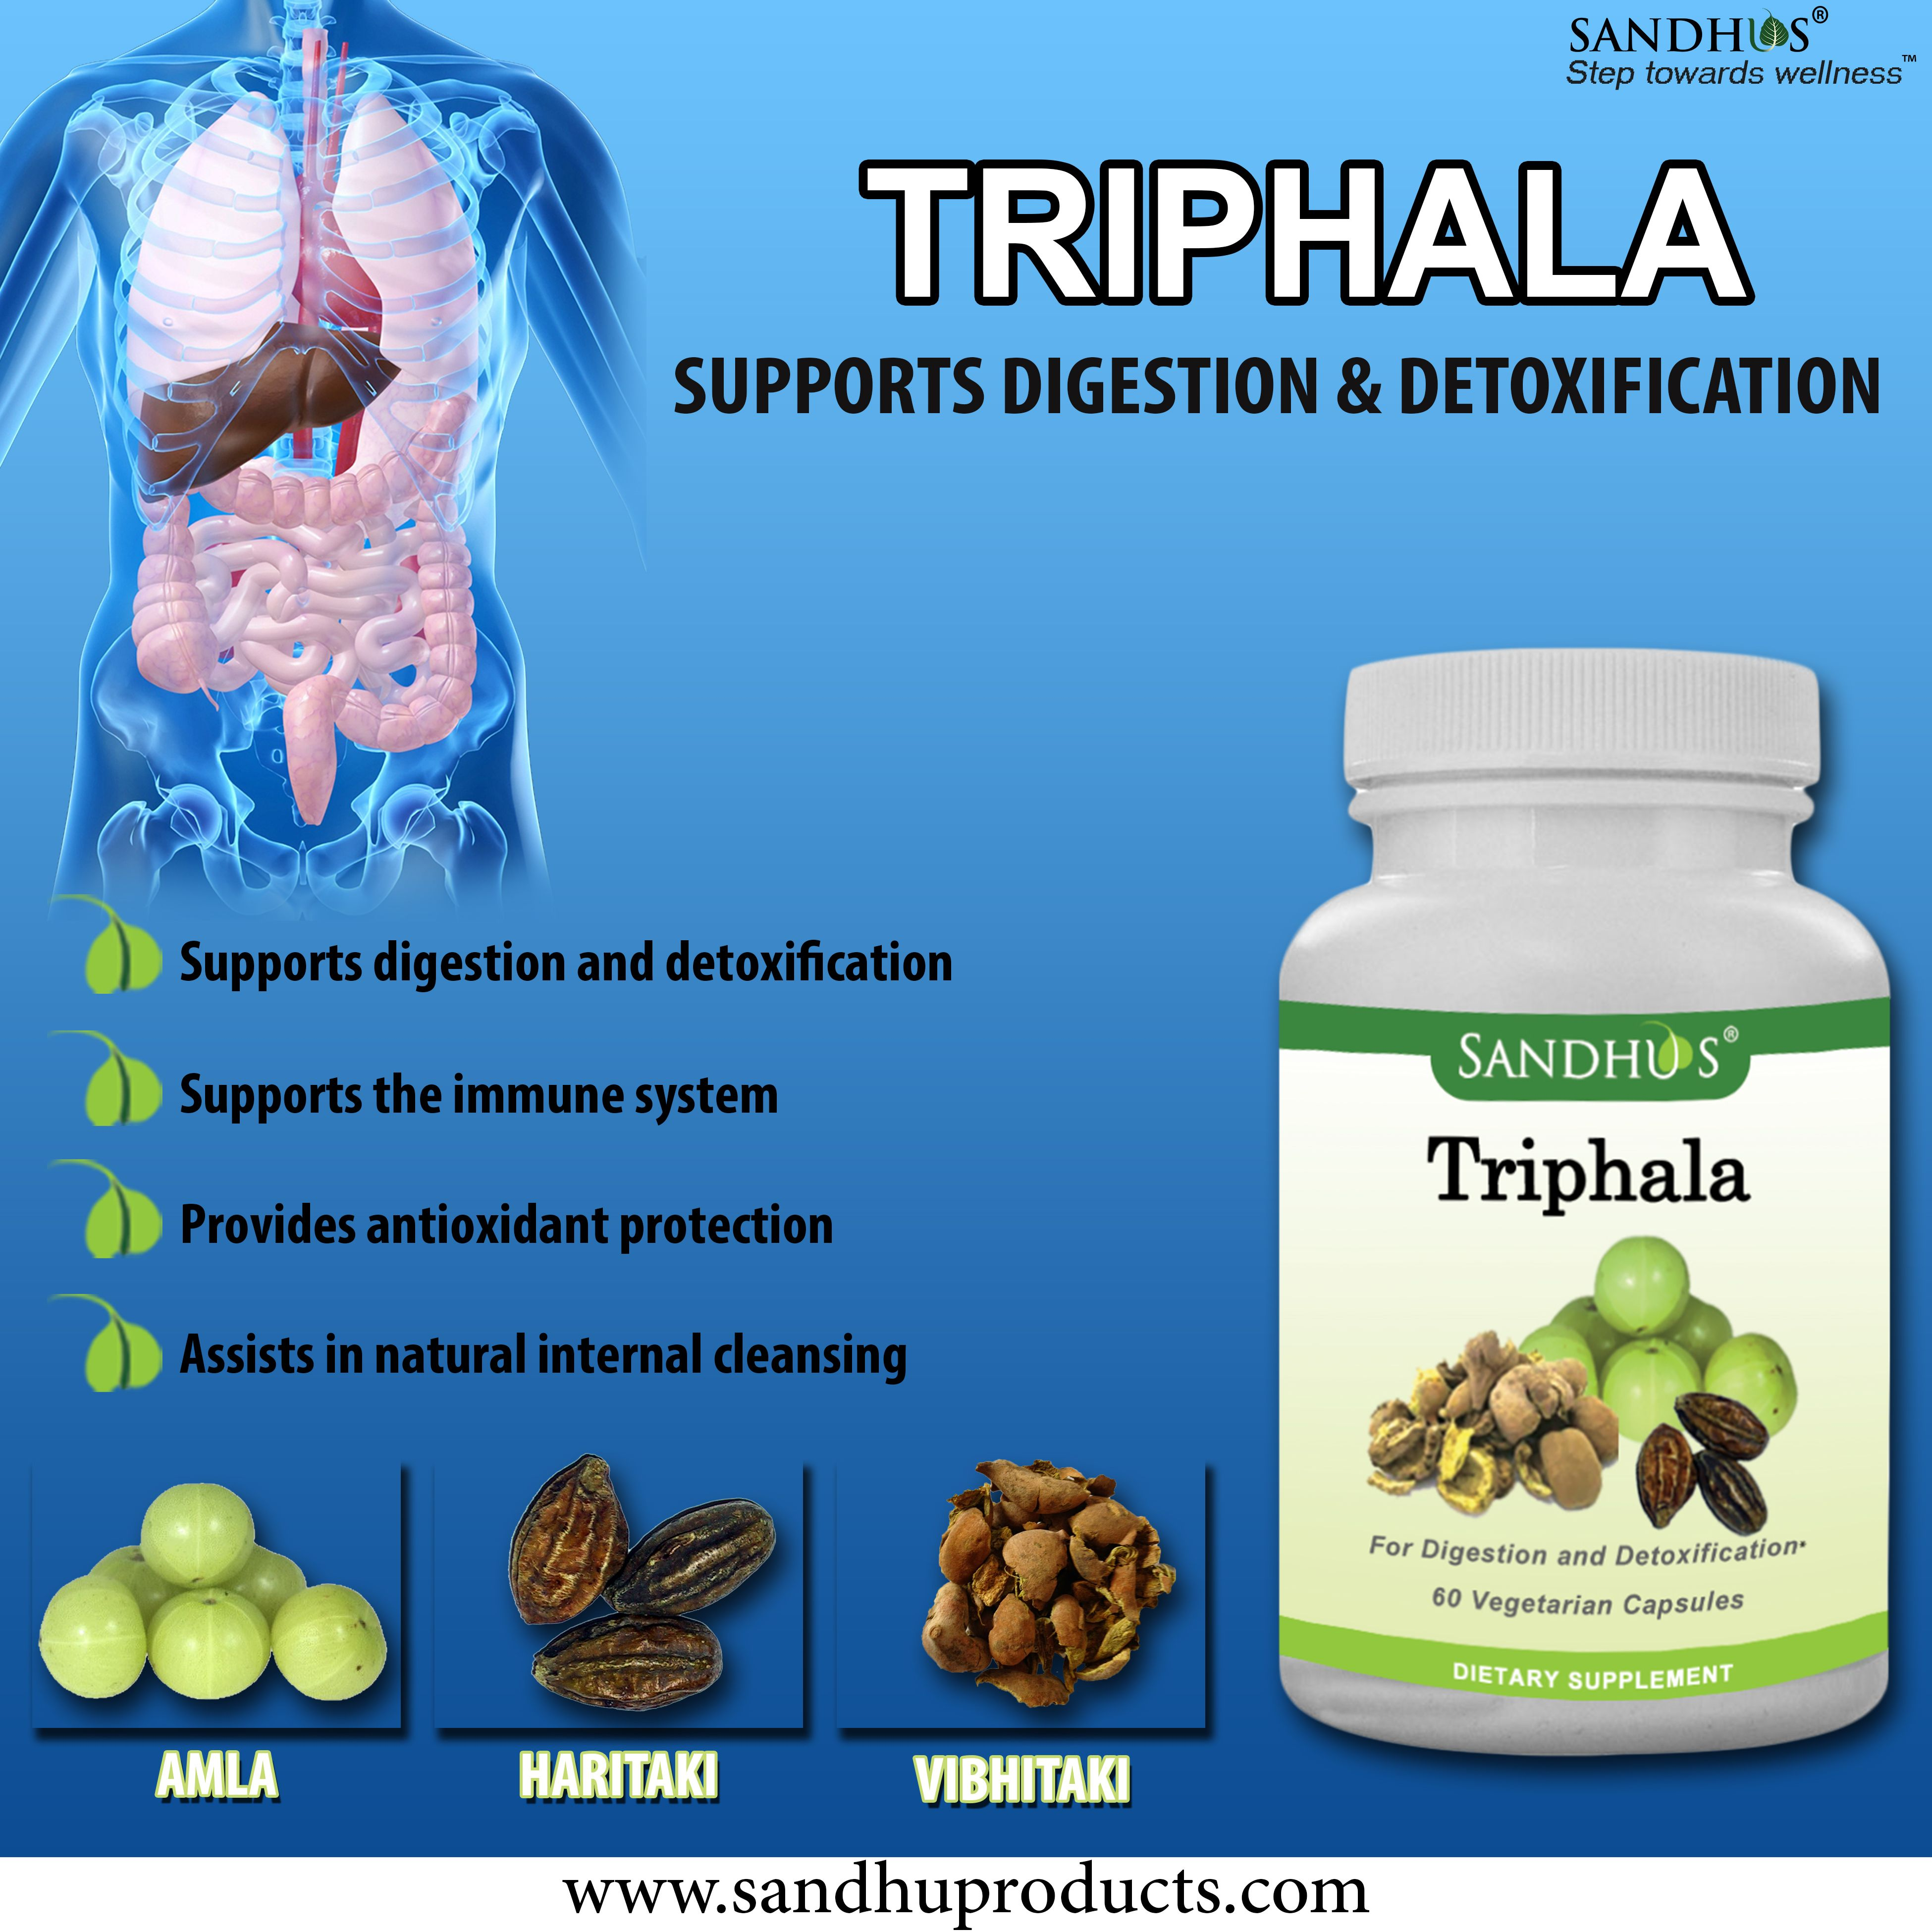 Use #SandhuProducts #Triphala #Capsules for healthy digestive system #Ayurveda #Livermore #Herb #supplements www.sandhuproducts.com